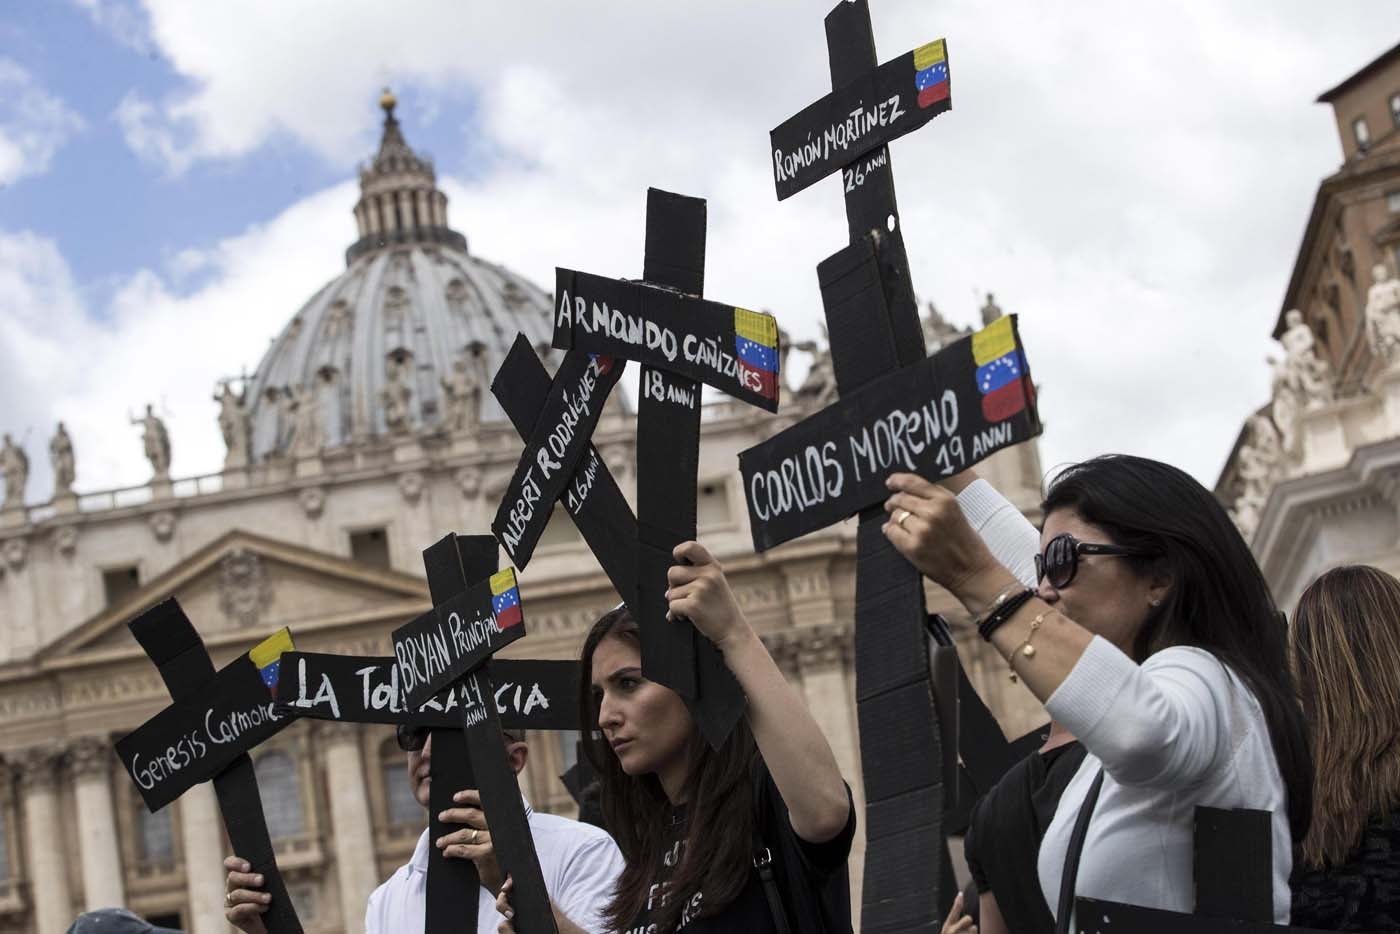 PER104. Vatican City (Vatican City State (holy See)), 07/05/2017.- Demonstrators with black crosses adorned with Venezuela flags and with the names of those killed in weeks of violent demonstrations calling on Venezuela's President Nicolas Maduro to step down, stage a demonstration in St. Peter's Square prior to the start of Pope Francis Regina Coeli noon prayer, at the Vatican, 07 May 2017. (Protestas, Papa) EFE/EPA/Massimo Percossi